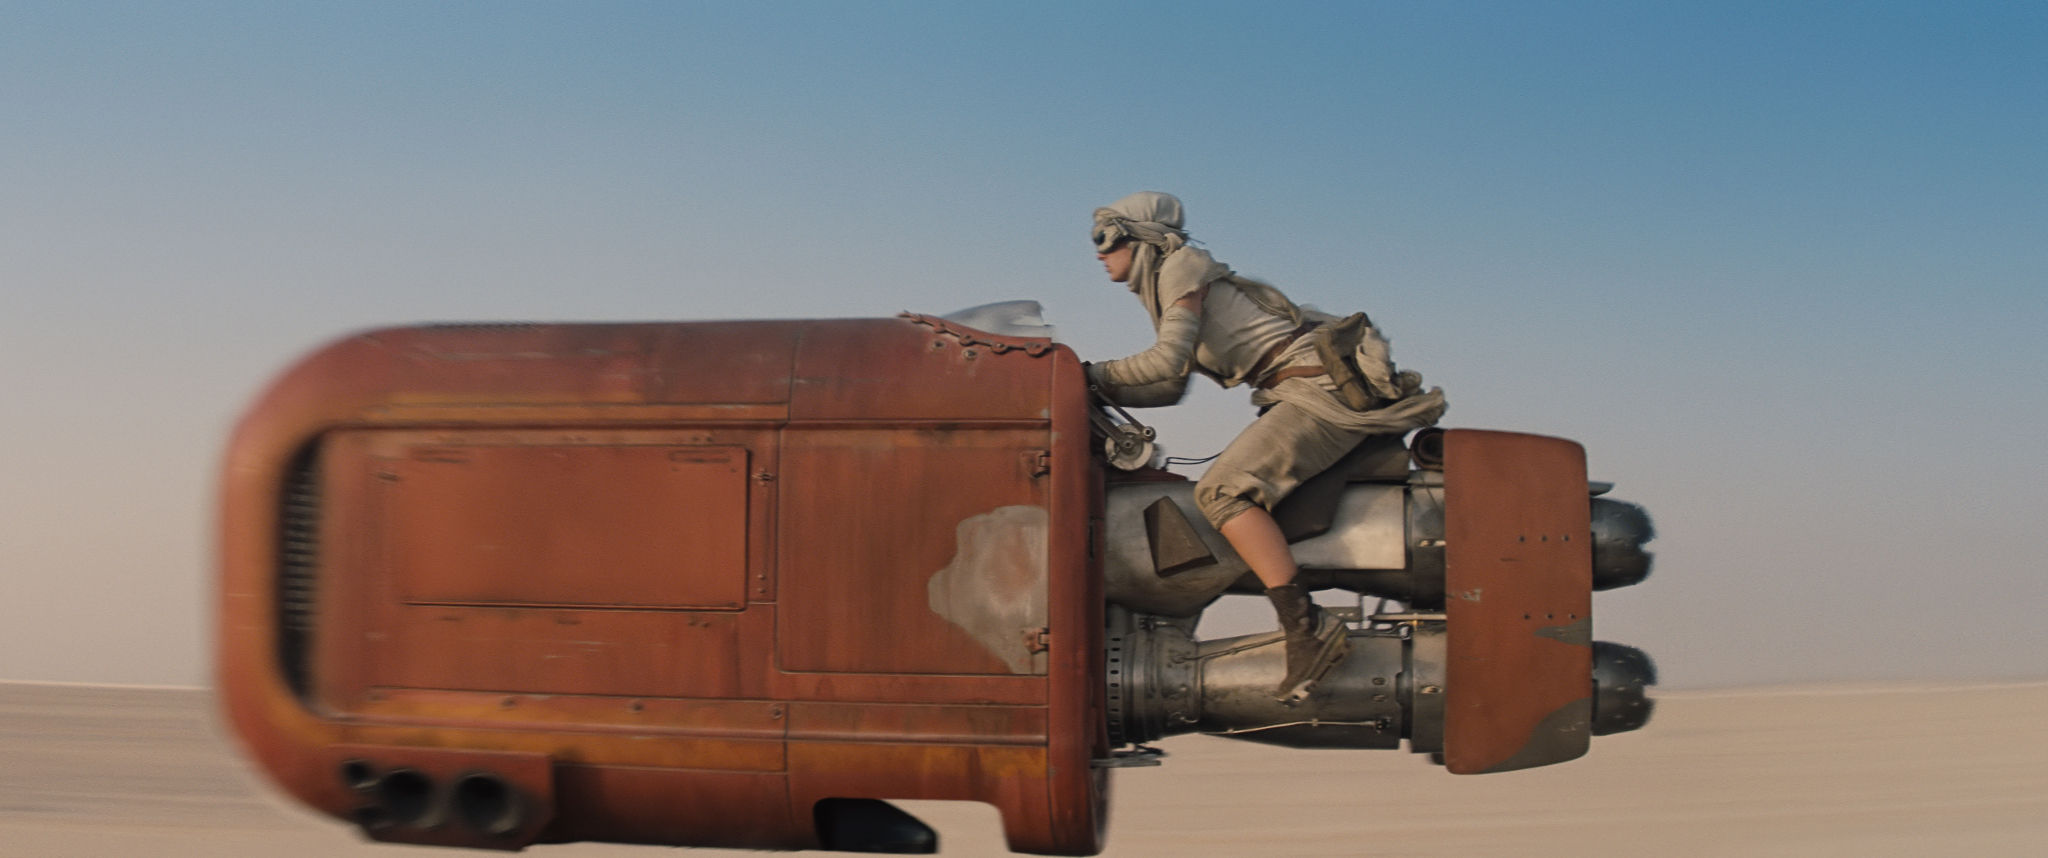 Star Wars The Force Awakens: which character is going to